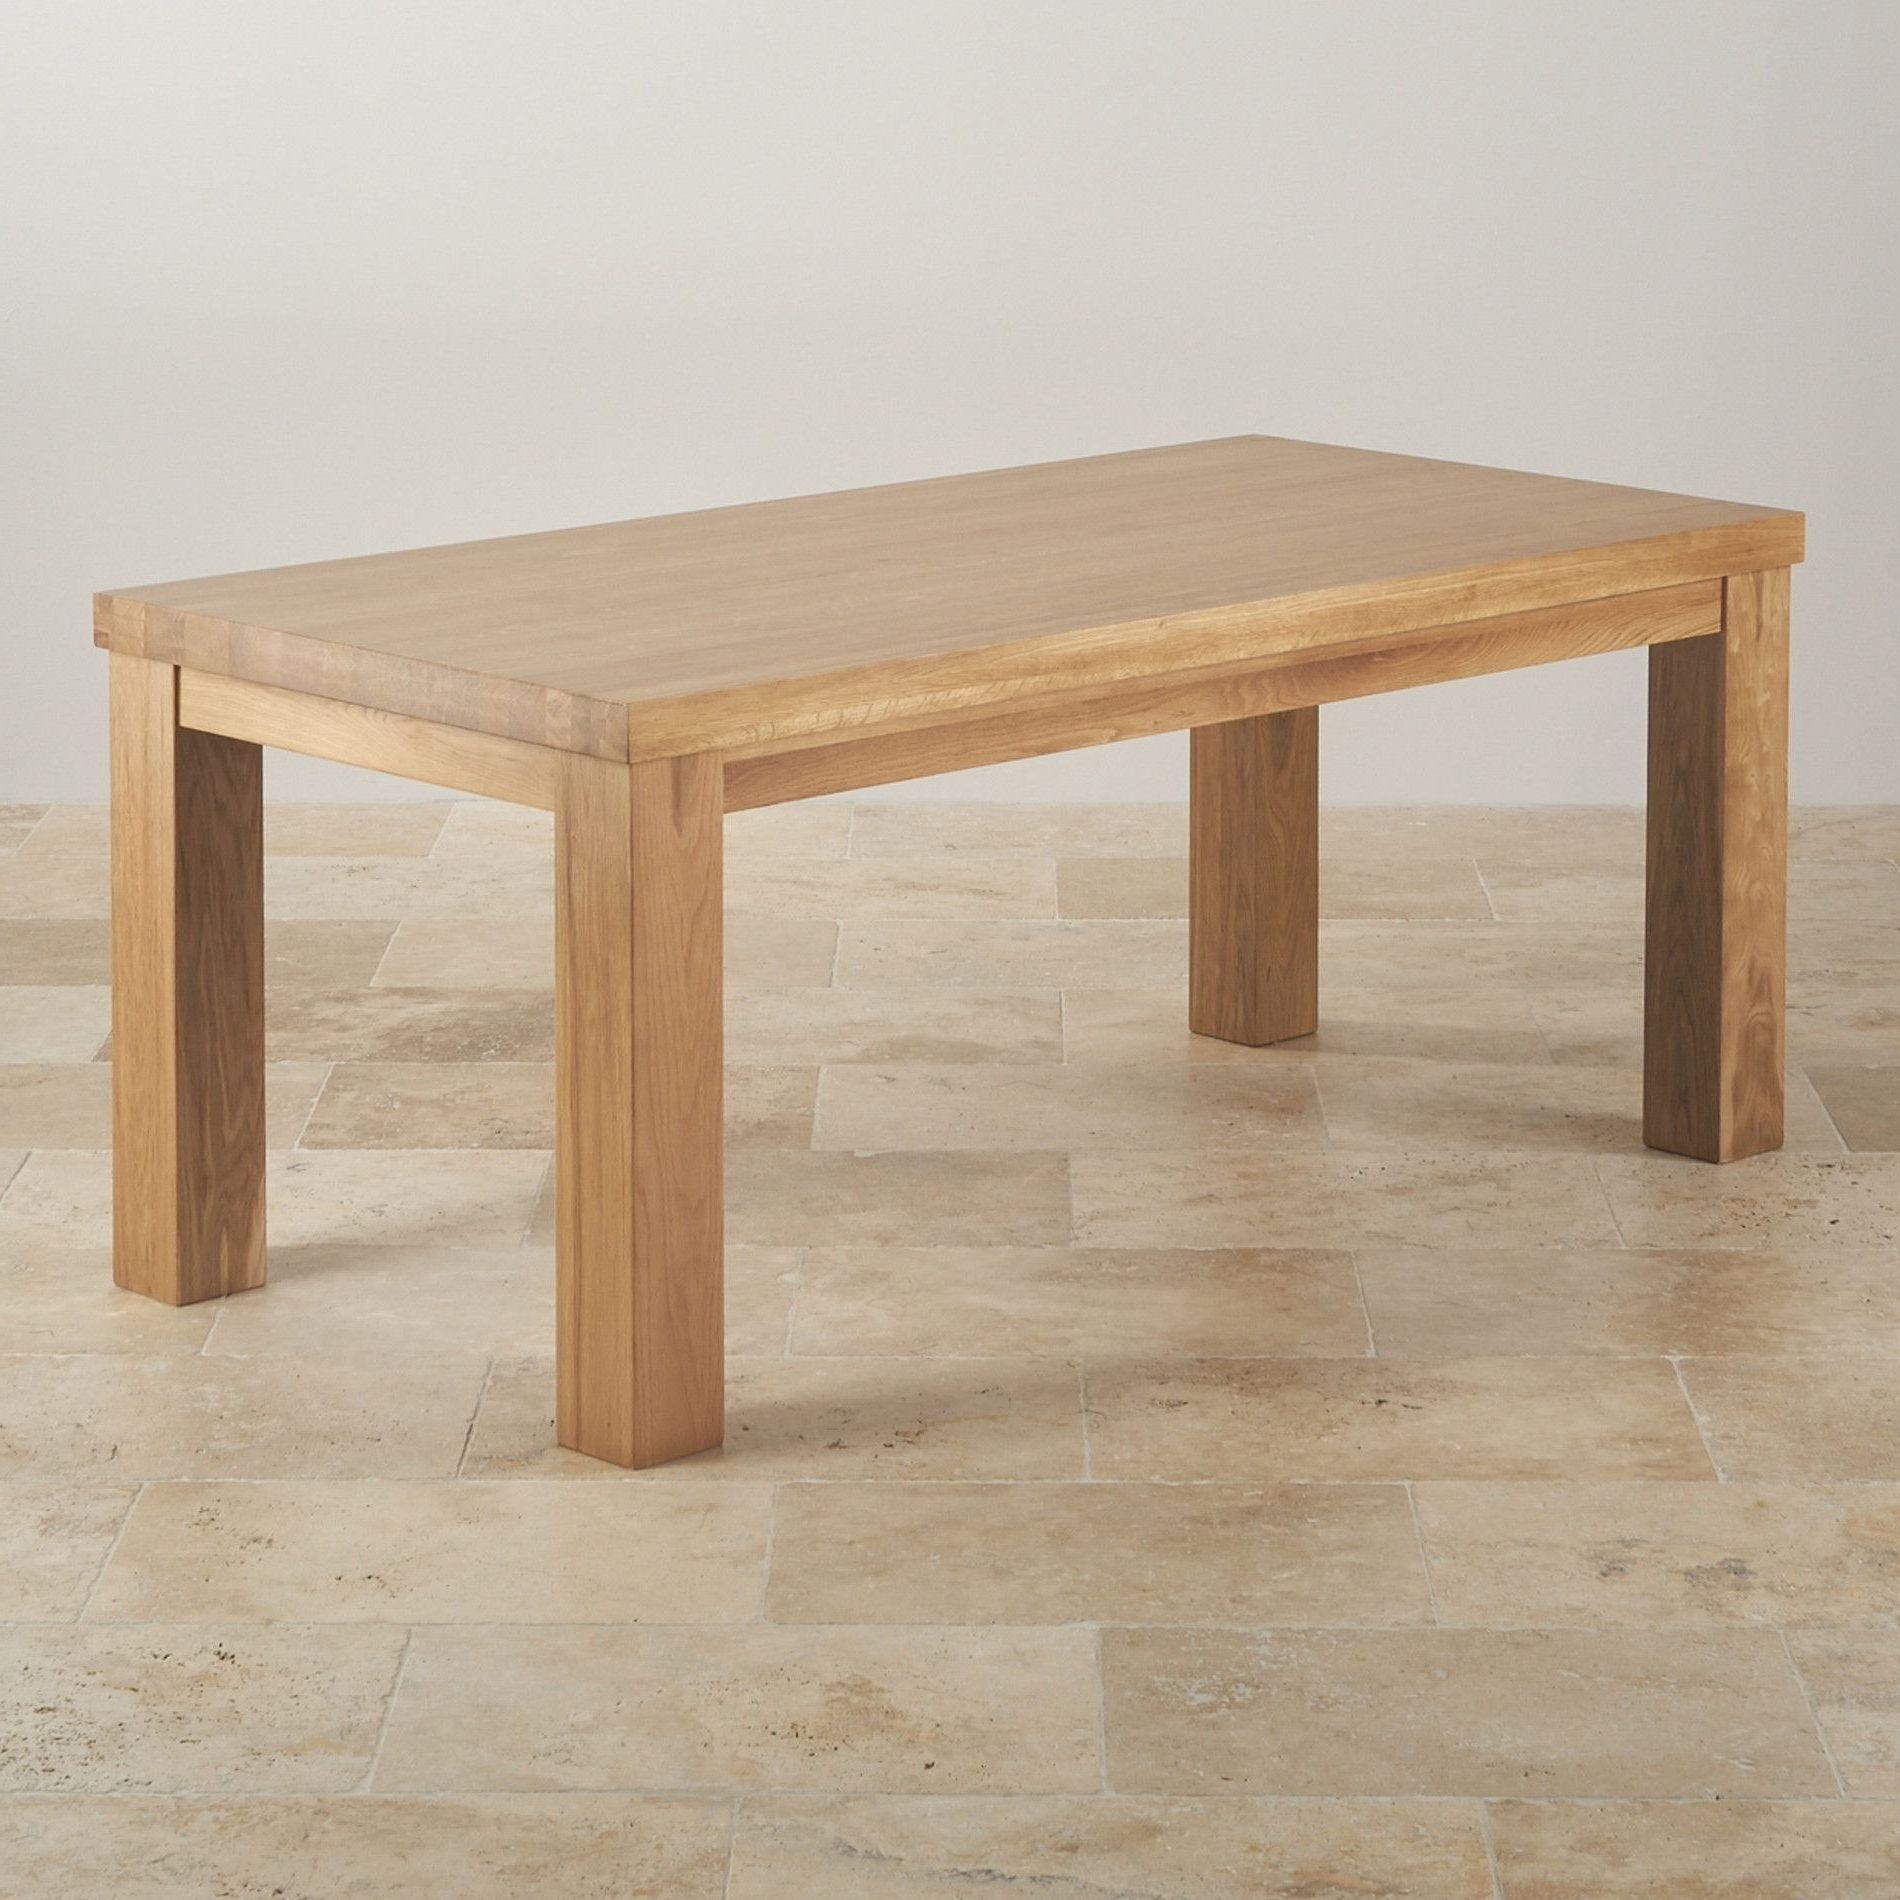 Latest Extending Oak Dining Tables Regarding Wood Dining Tables Contemporary Chunky Solid Oak Table Rustic Round (View 13 of 25)